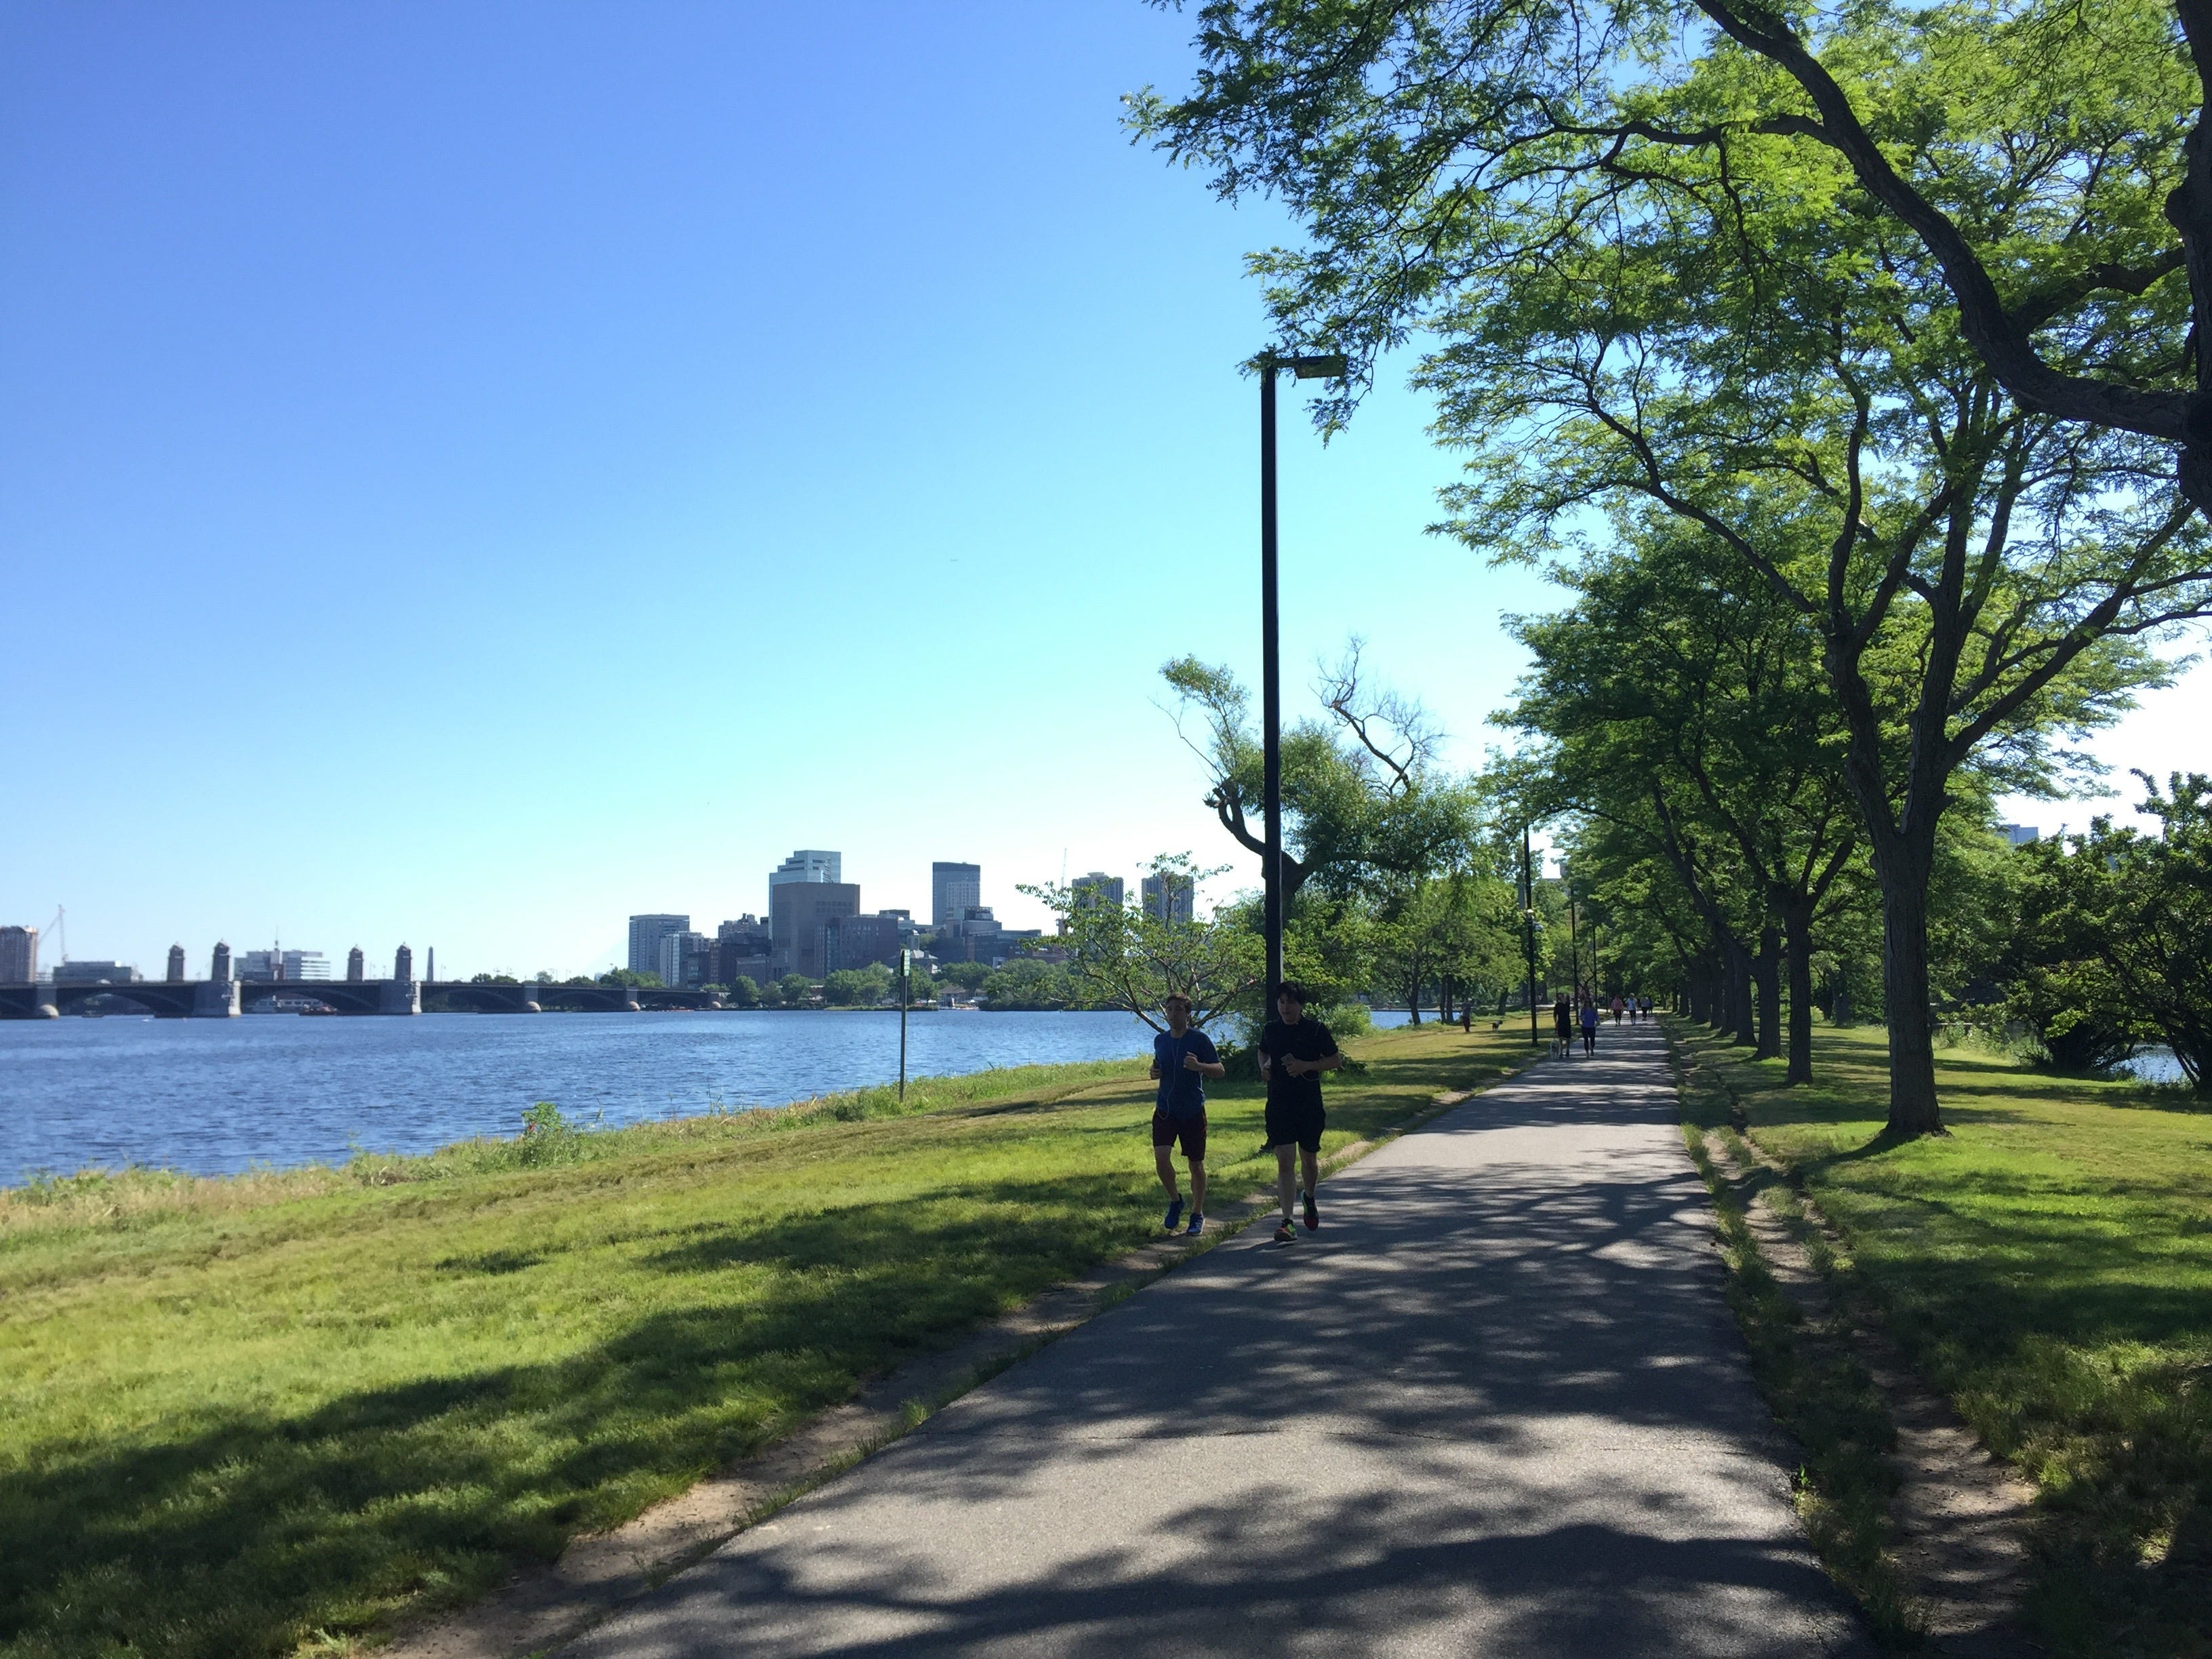 In Massachusetts, the Charles River Bike Path has great views of the Boston skyline and the campuses of Harvard and MIT.